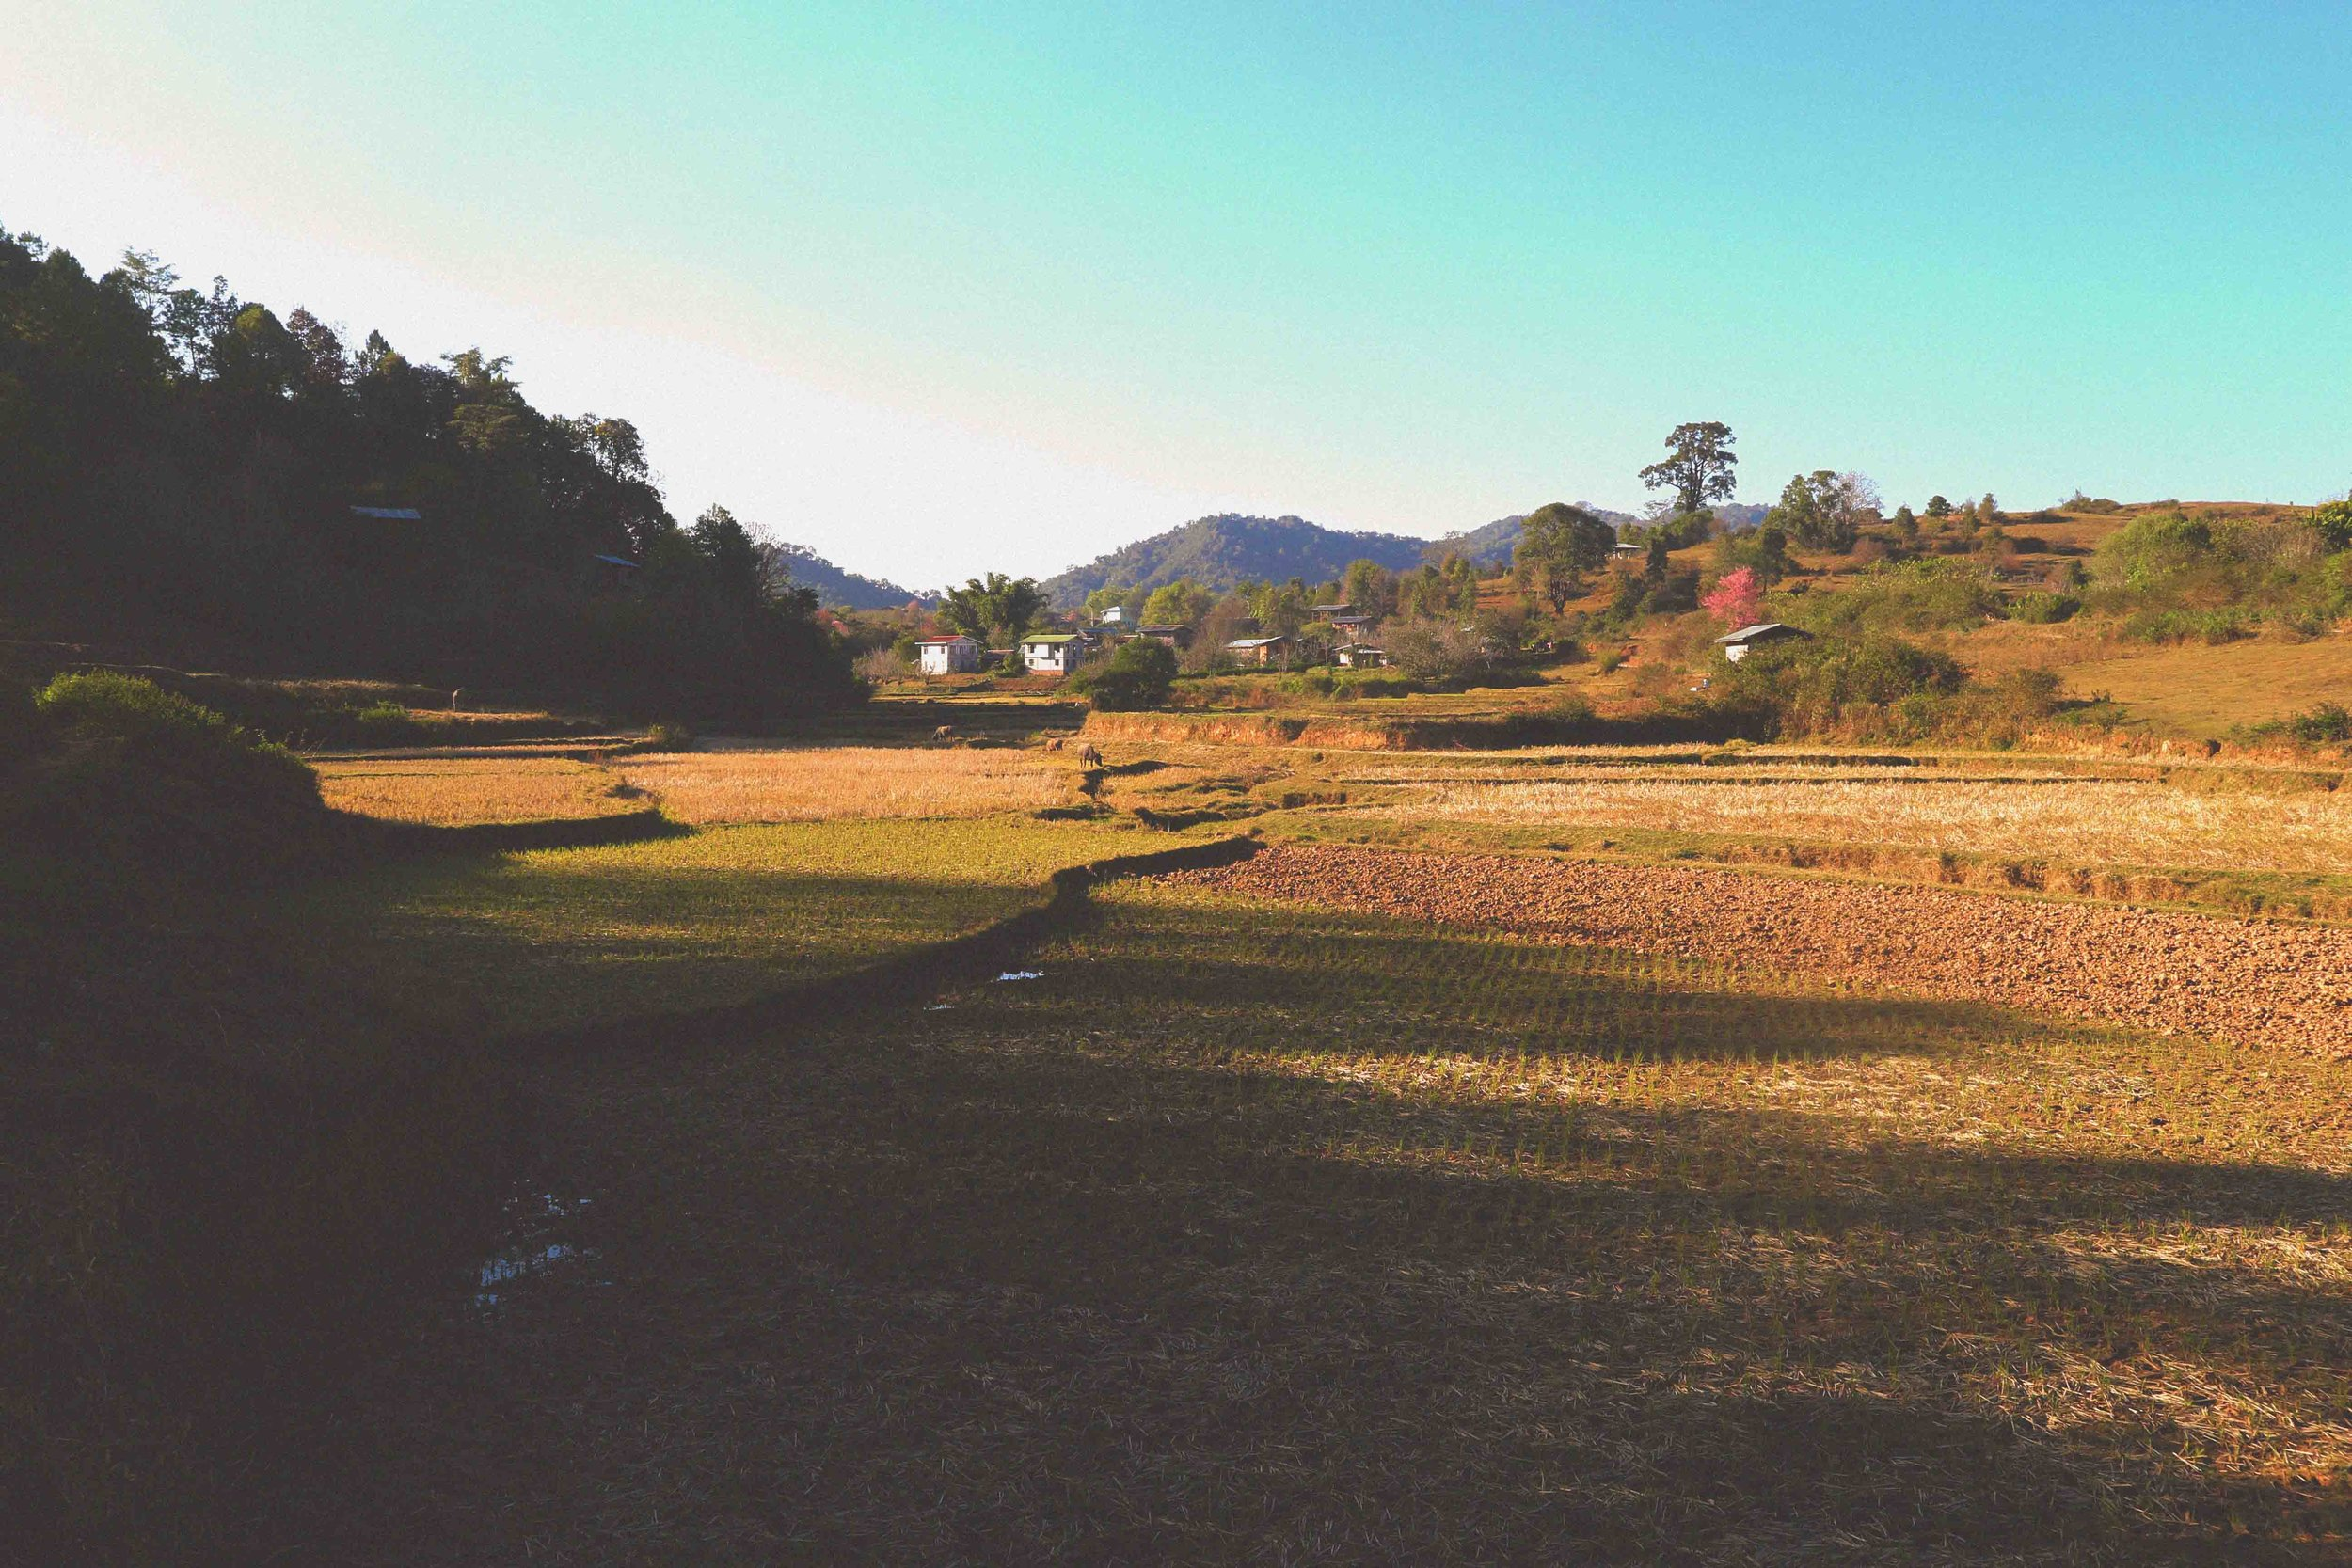 Sun setting on a rice paddy in the dry season